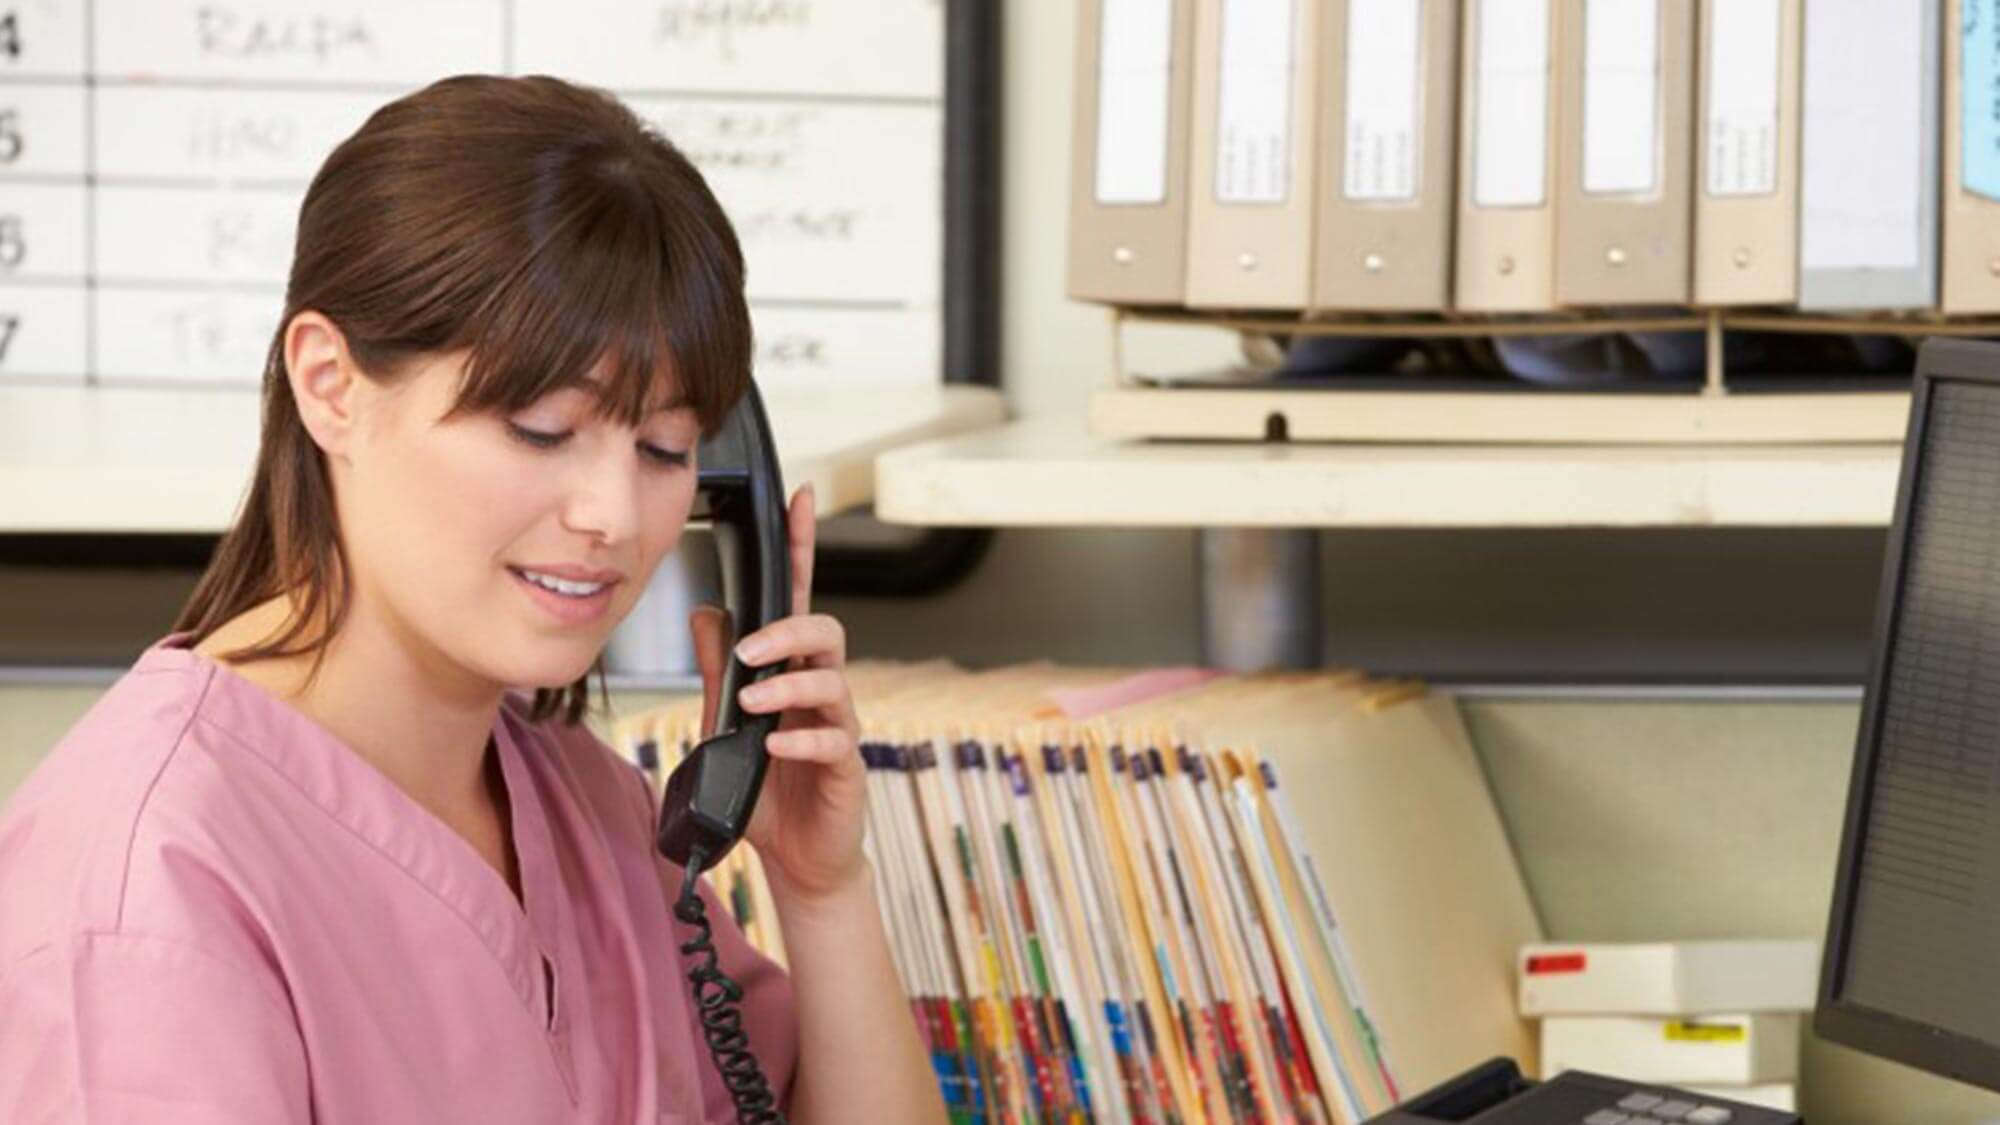 A woman in scrubs talks on the phone and reads a patient file.